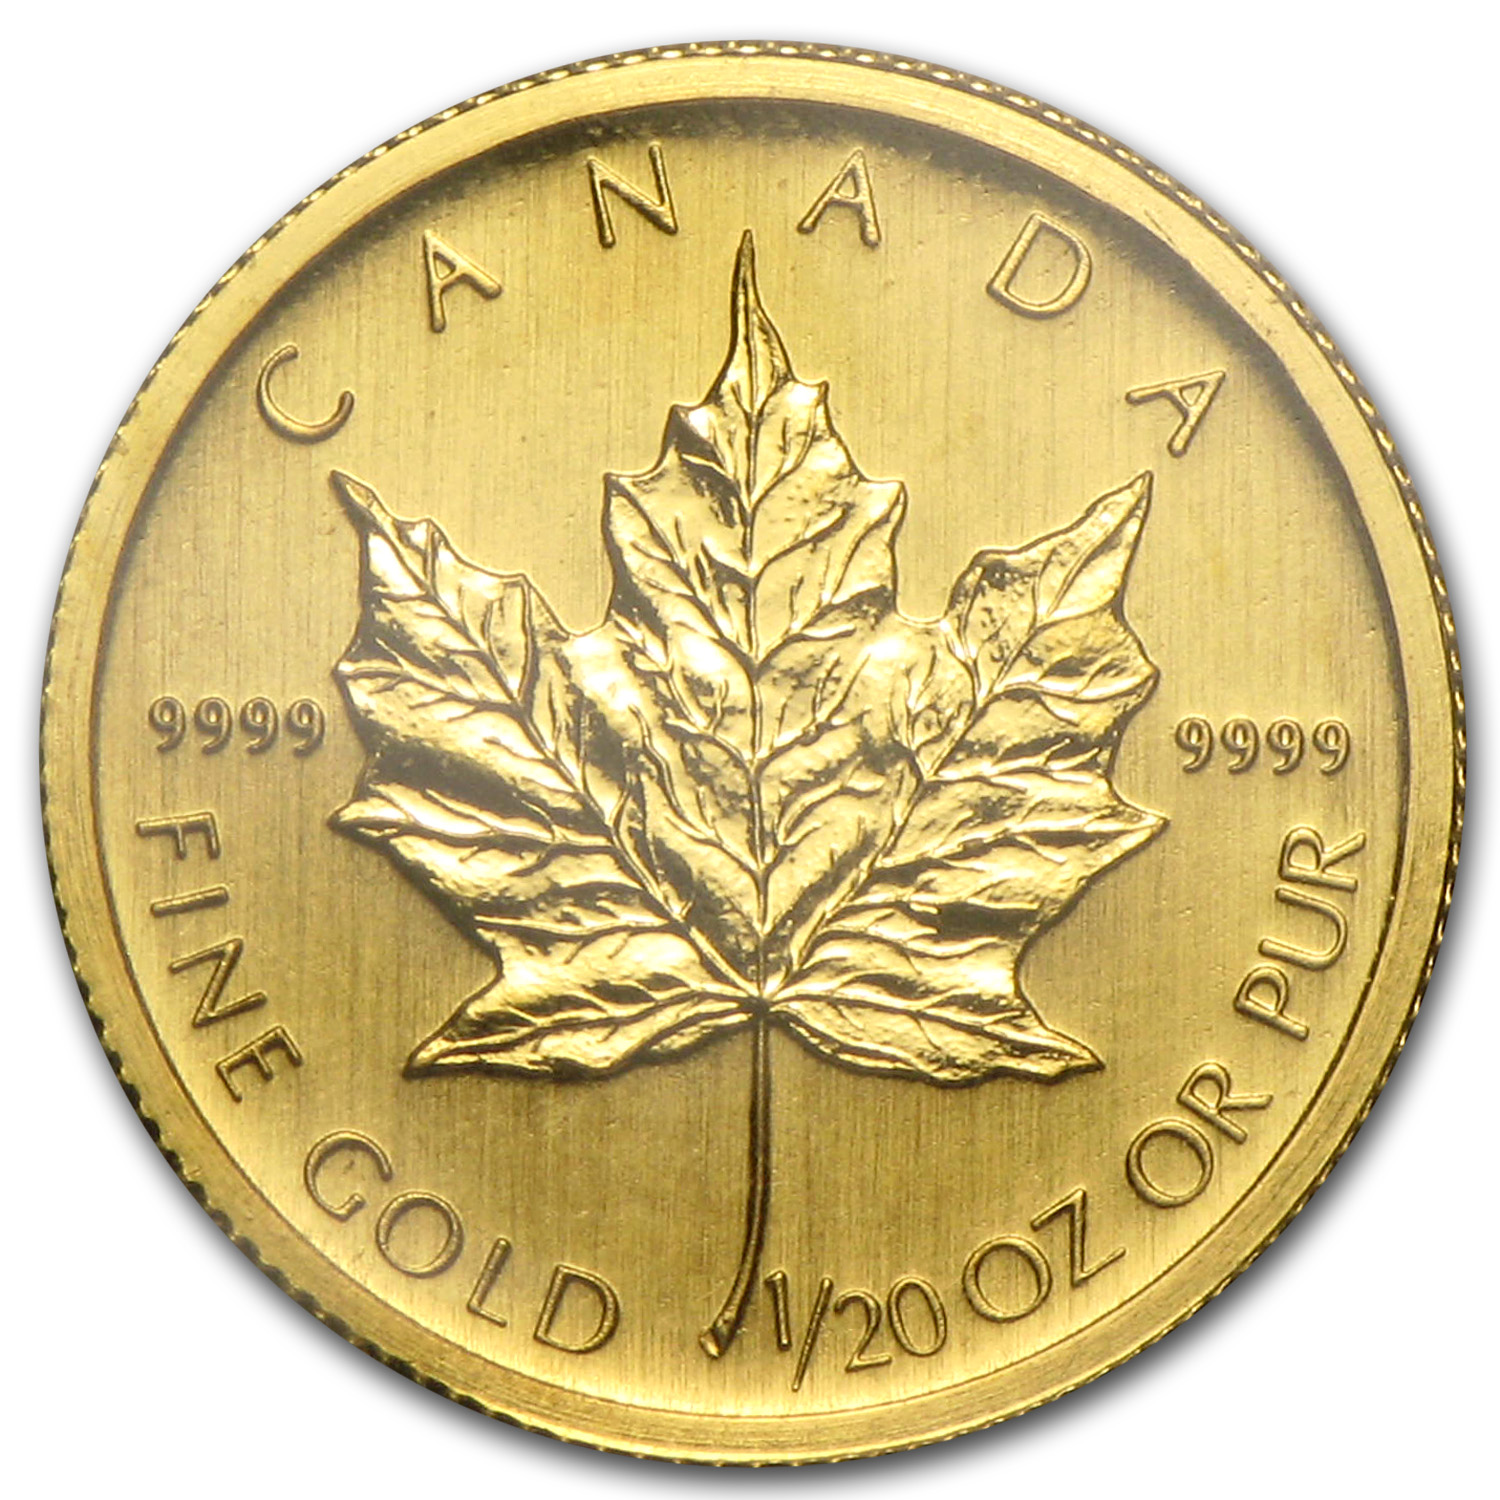 2008 Canada 1/20 oz Gold Maple Leaf BU